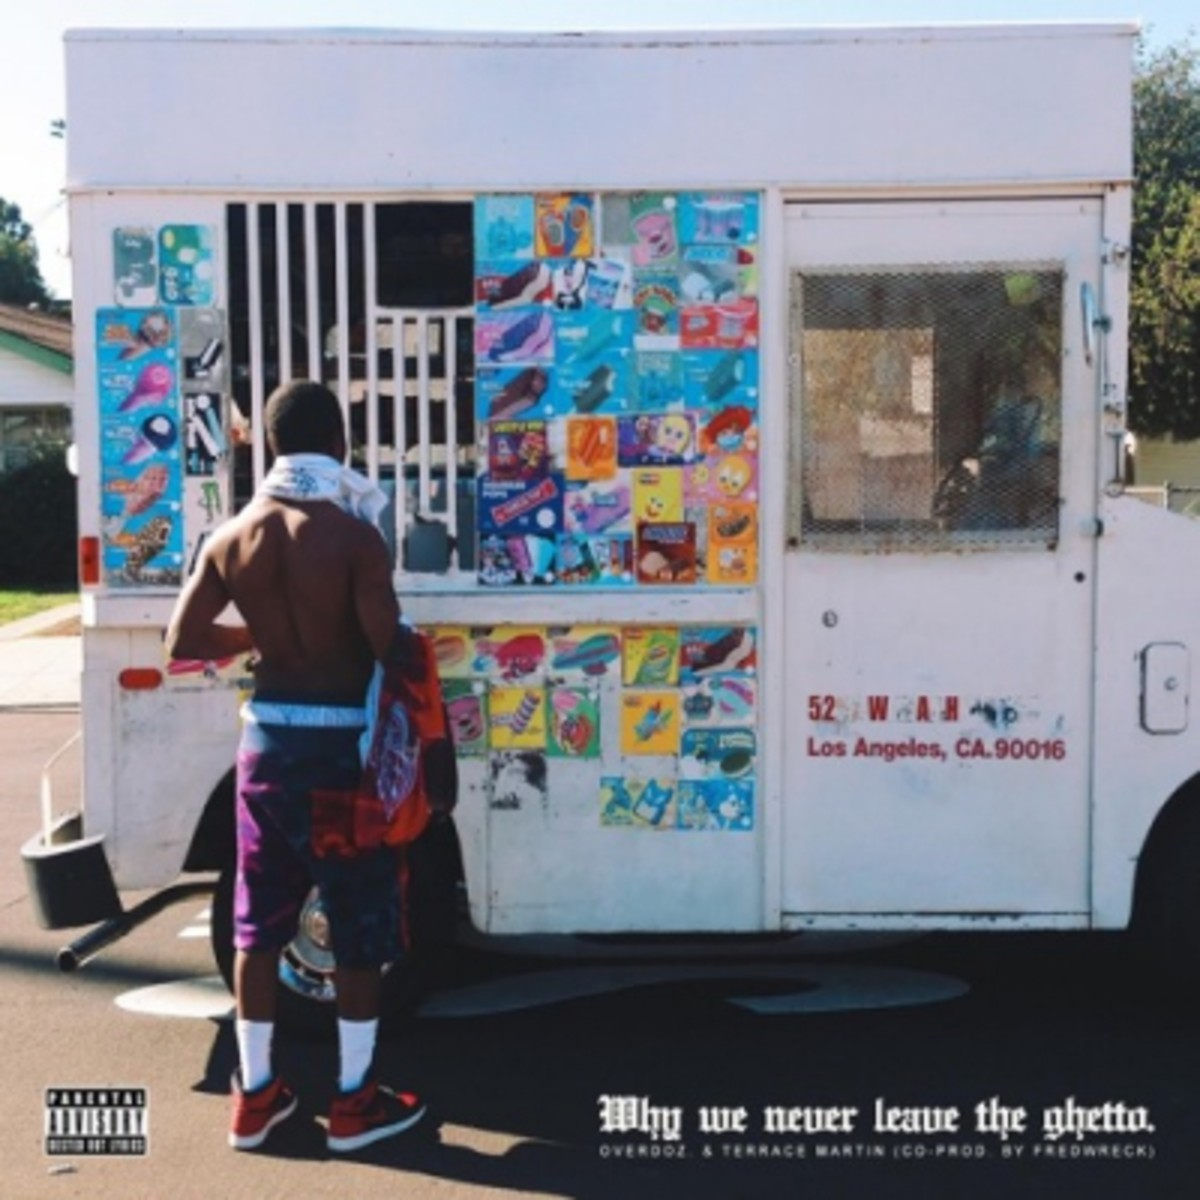 overdoz-why-we-never-leave-the-ghetto.jpg